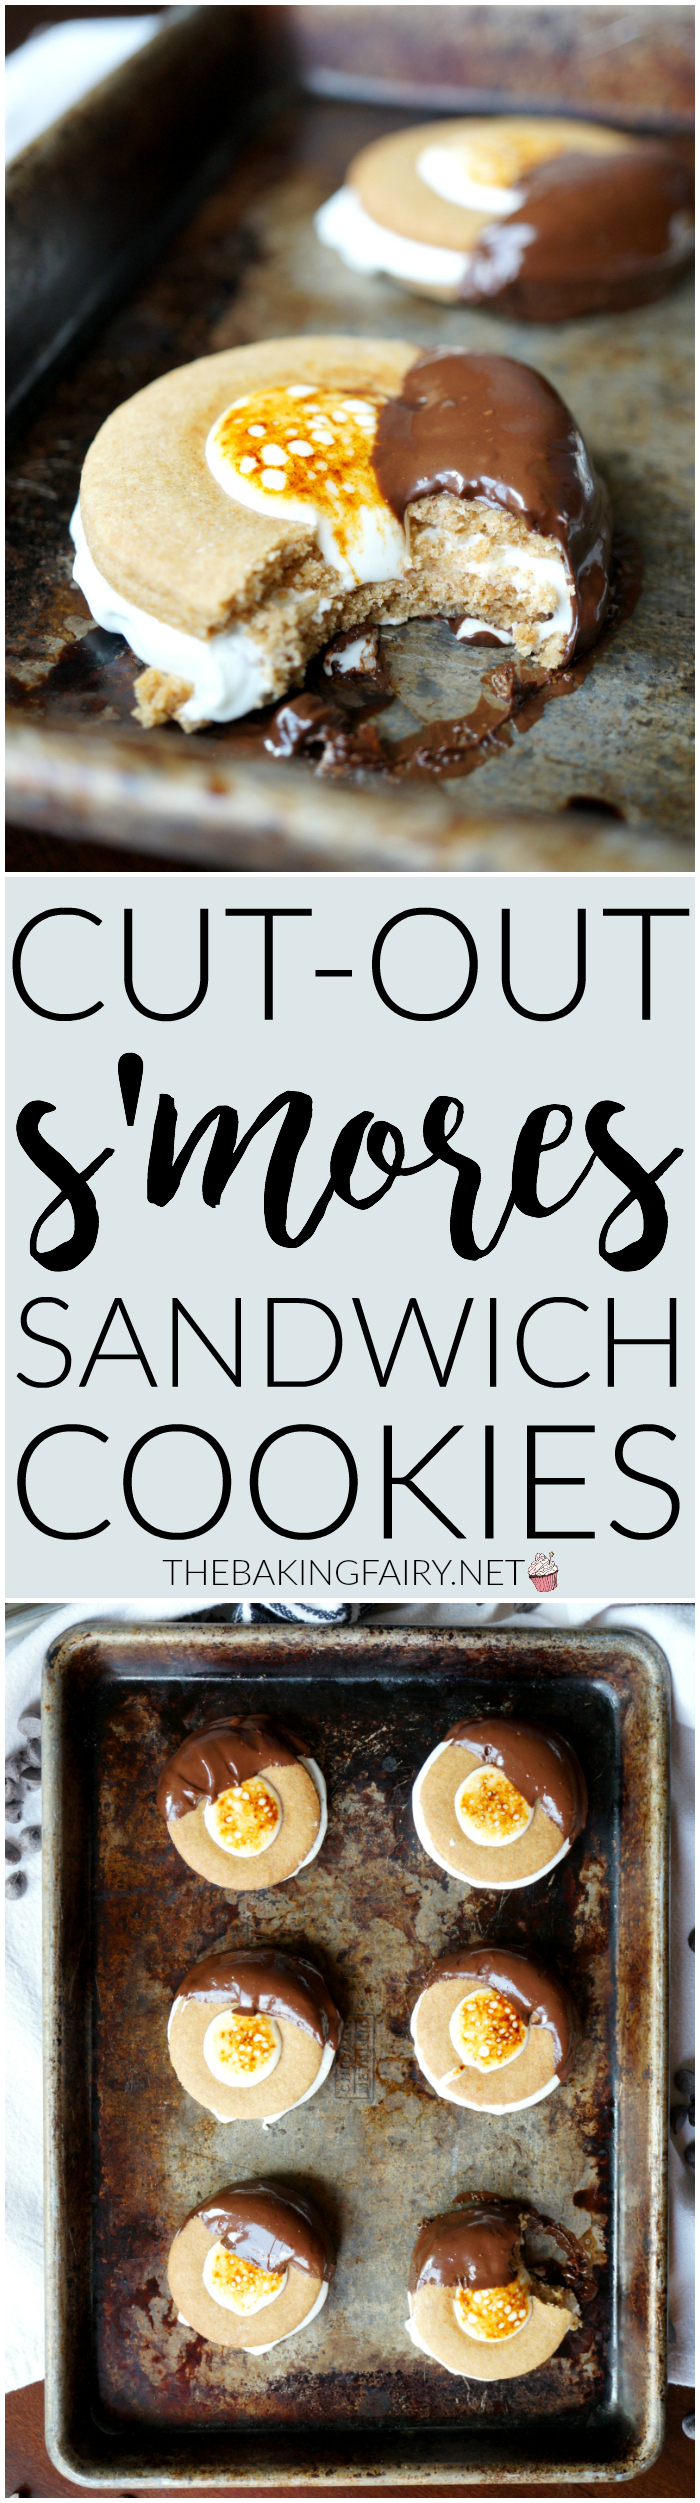 cut-out s'mores sandwich cookies | The Baking Fairy